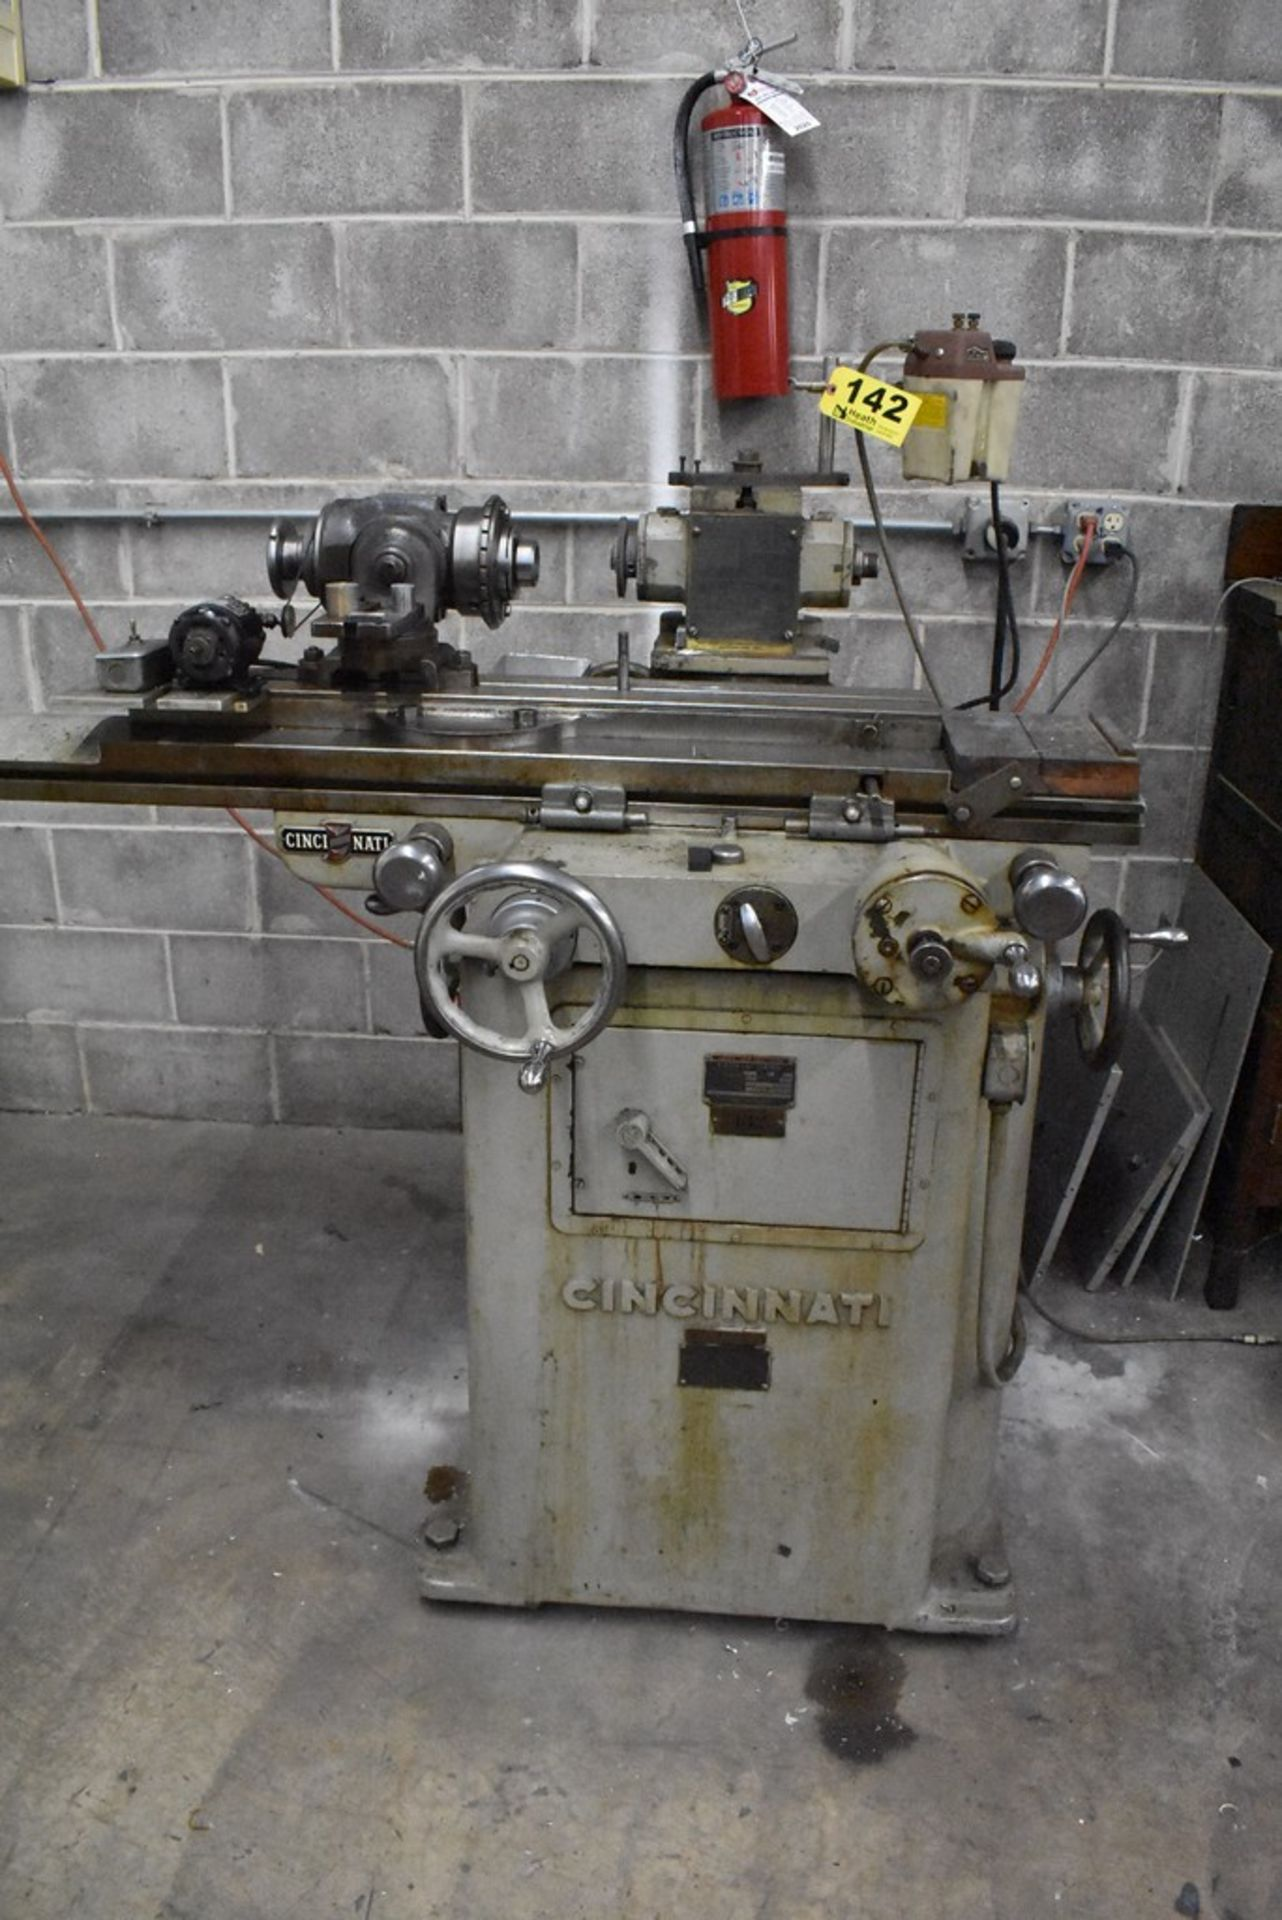 CINCINNATI NO. 2 TOOL AND CUTTER GRINDER, S/N 1D2T1Z-771, WITH MOTORIZED WORK HEAD - Image 7 of 14